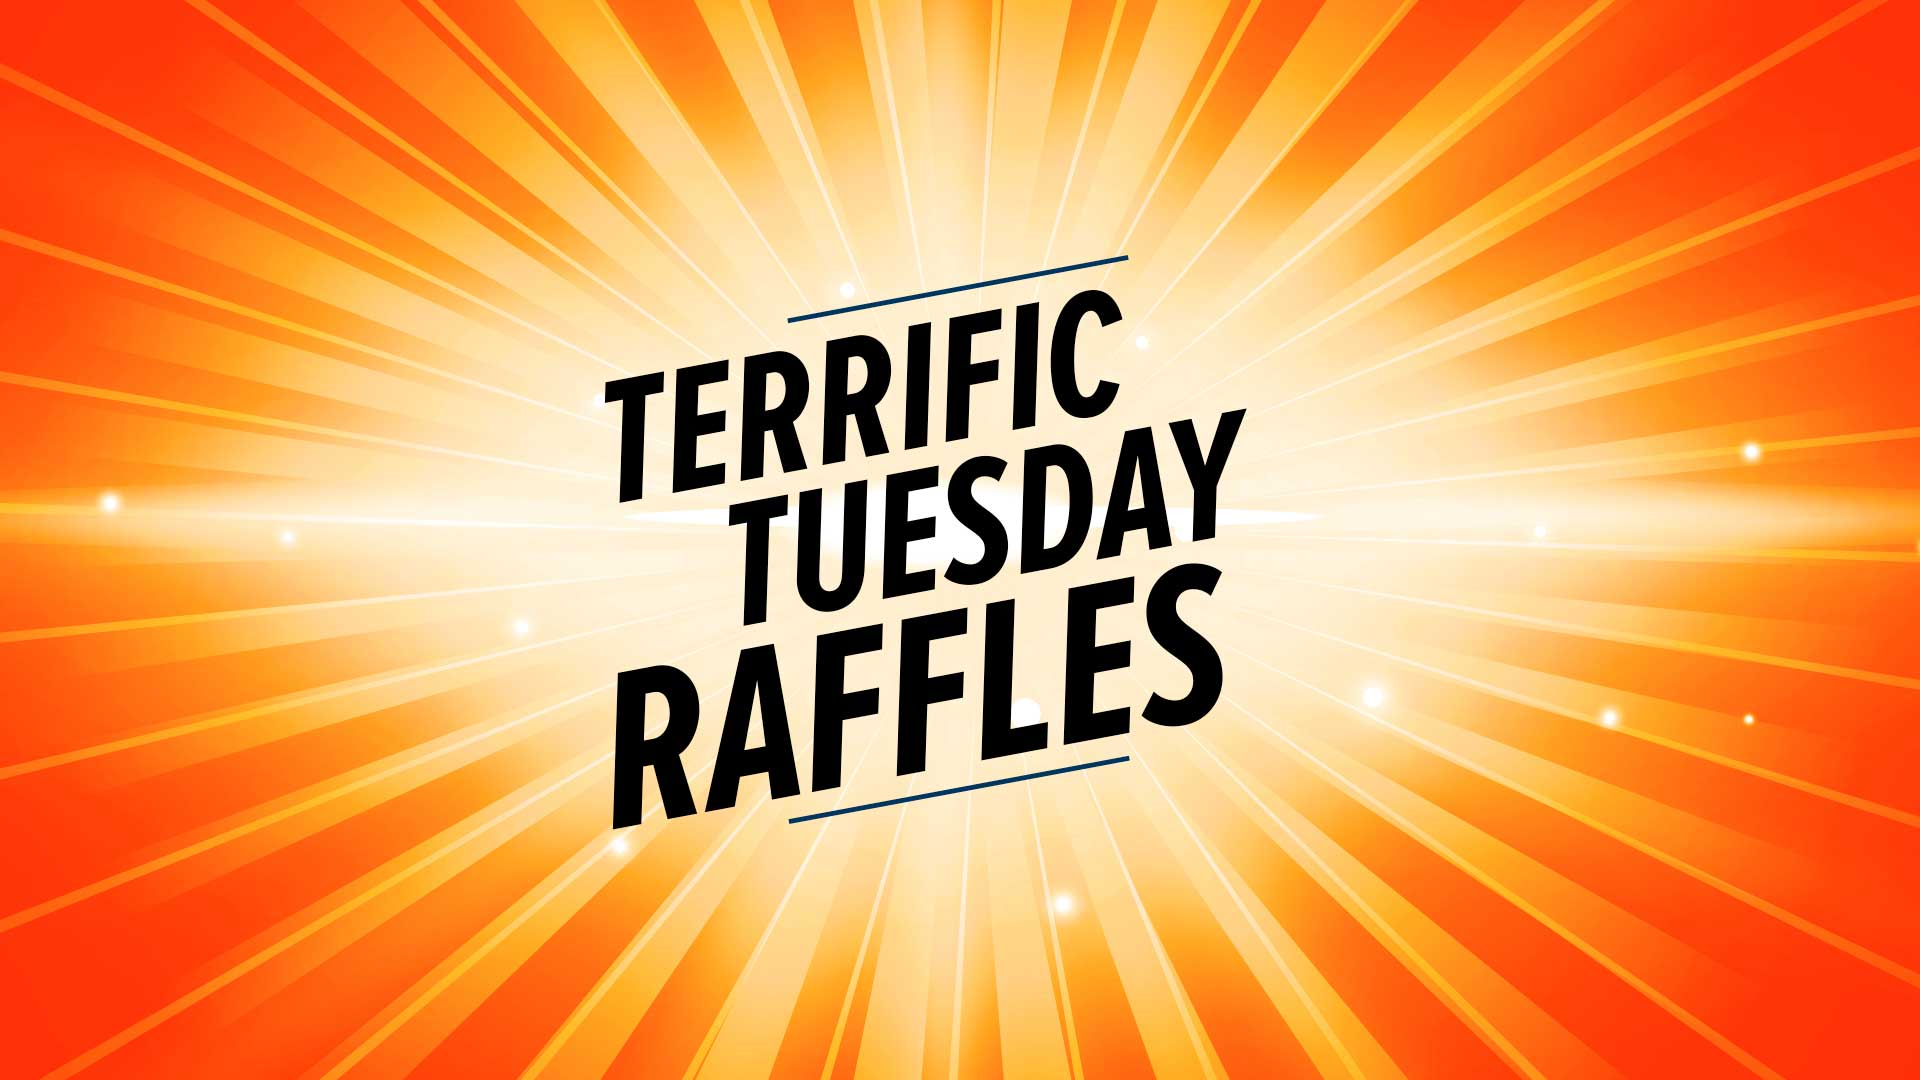 Terrific Tuesday Raffles